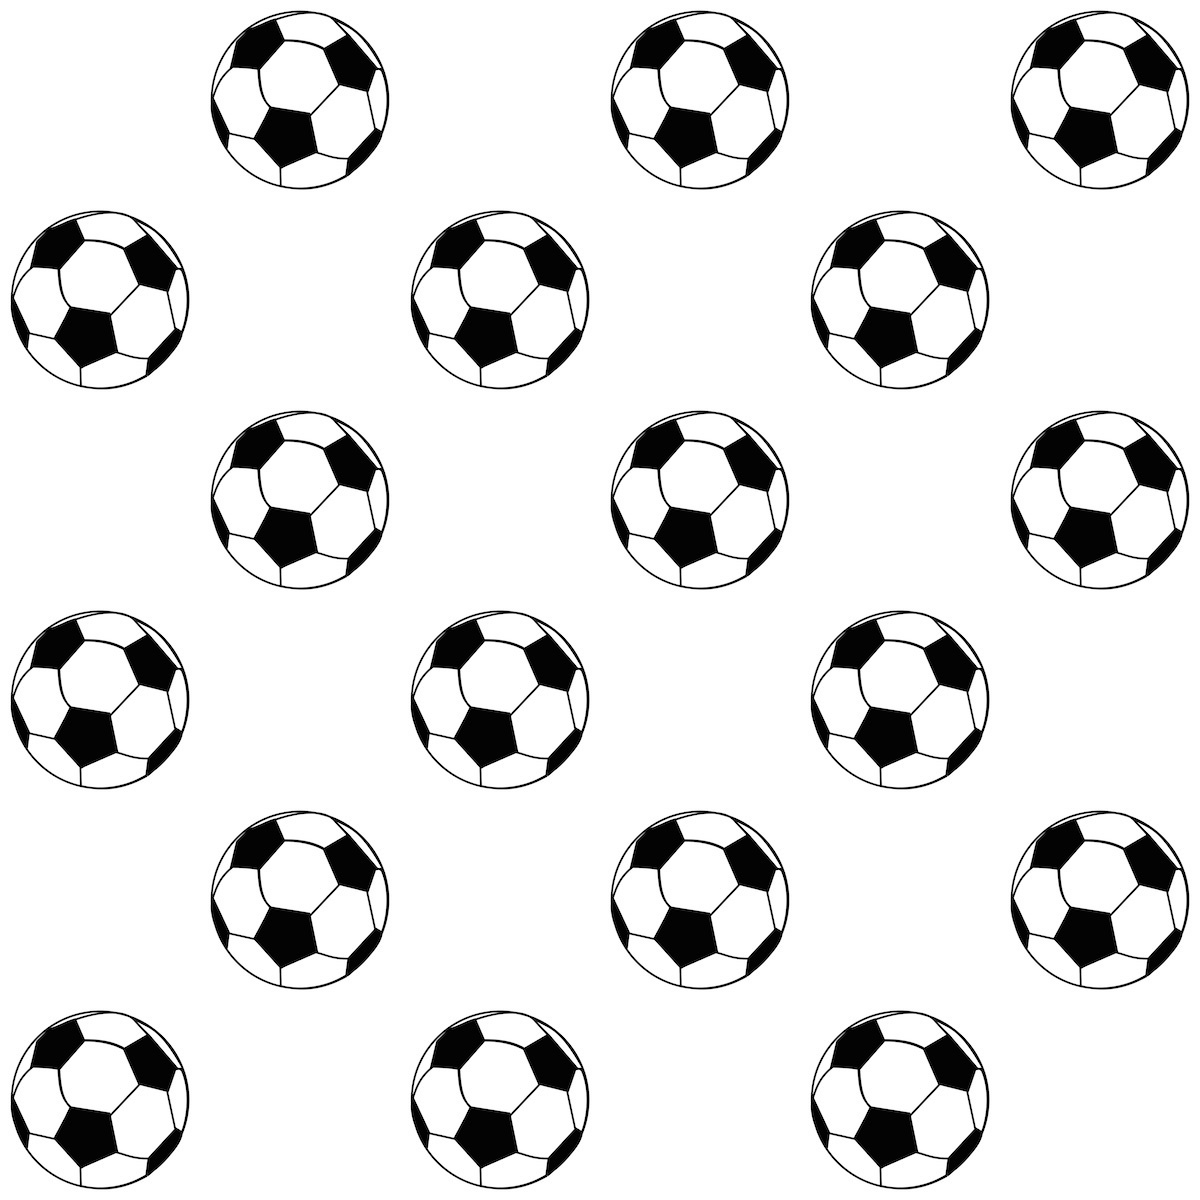 Printable Footballs | Free Download Best Printable Footballs On - Free Printable Football Templates